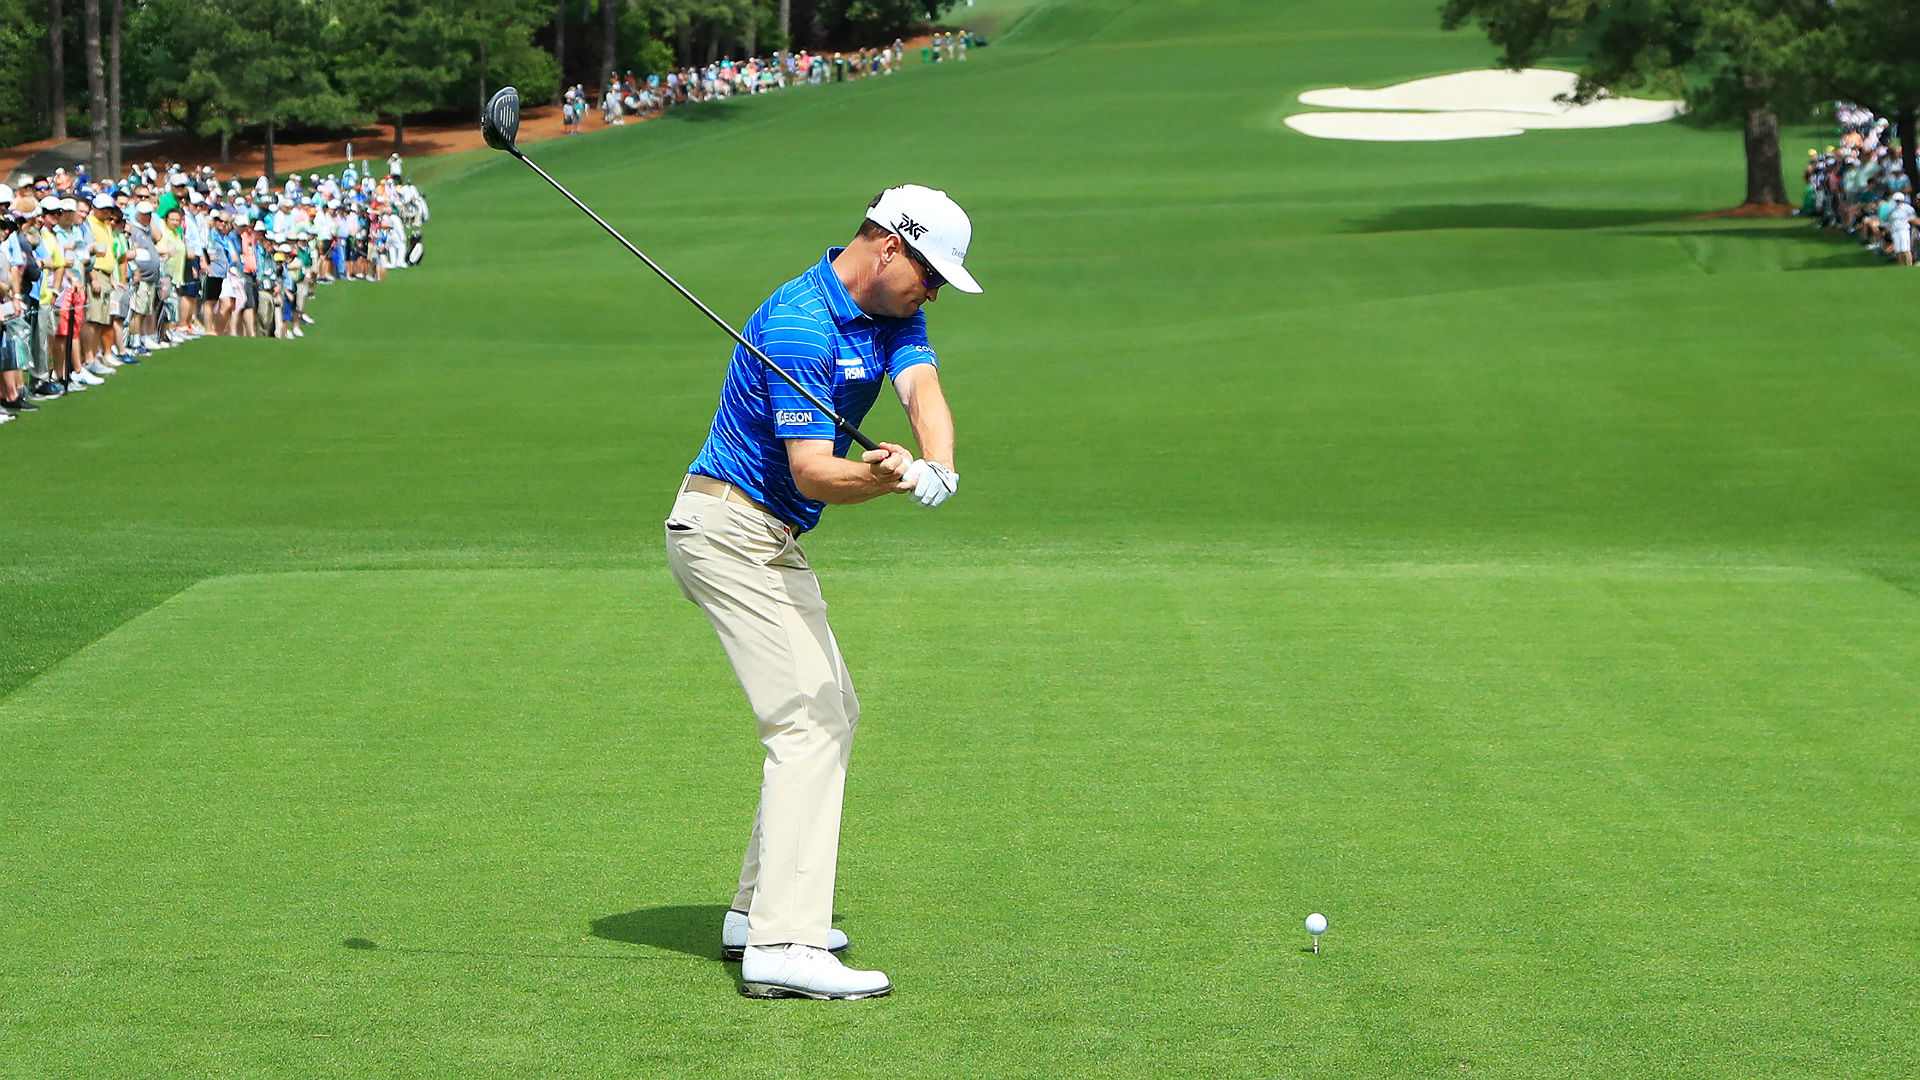 Zach Johnson Accidentally Hits Ball With Practice Swing